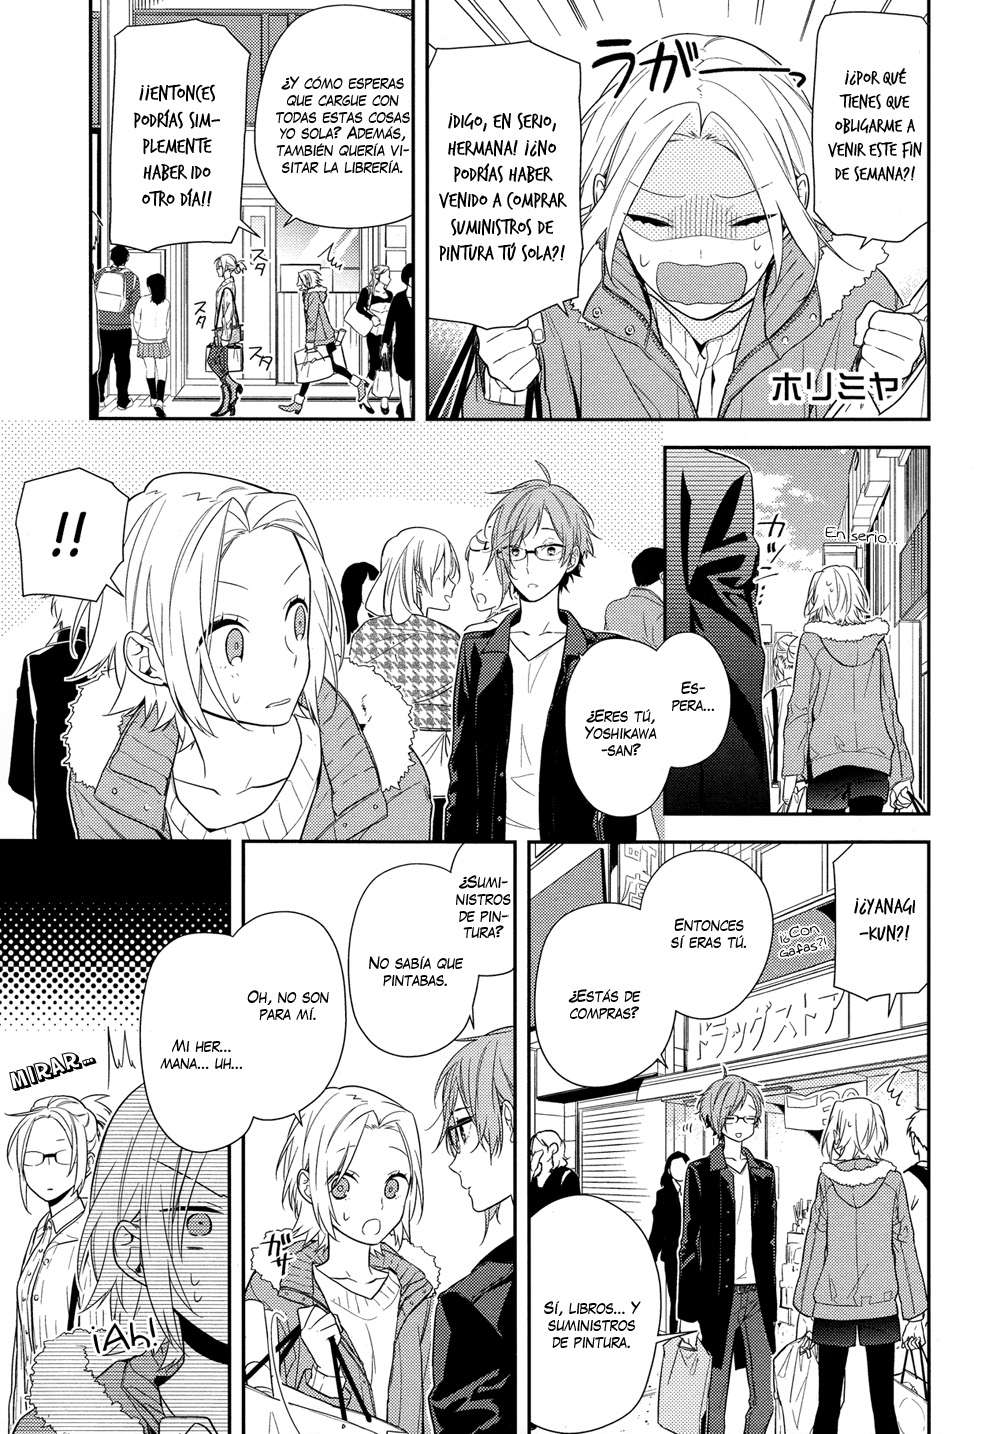 http://c5.ninemanga.com/es_manga/19/1043/434711/5625c3aac56c198ad77688028e08a4c3.jpg Page 2